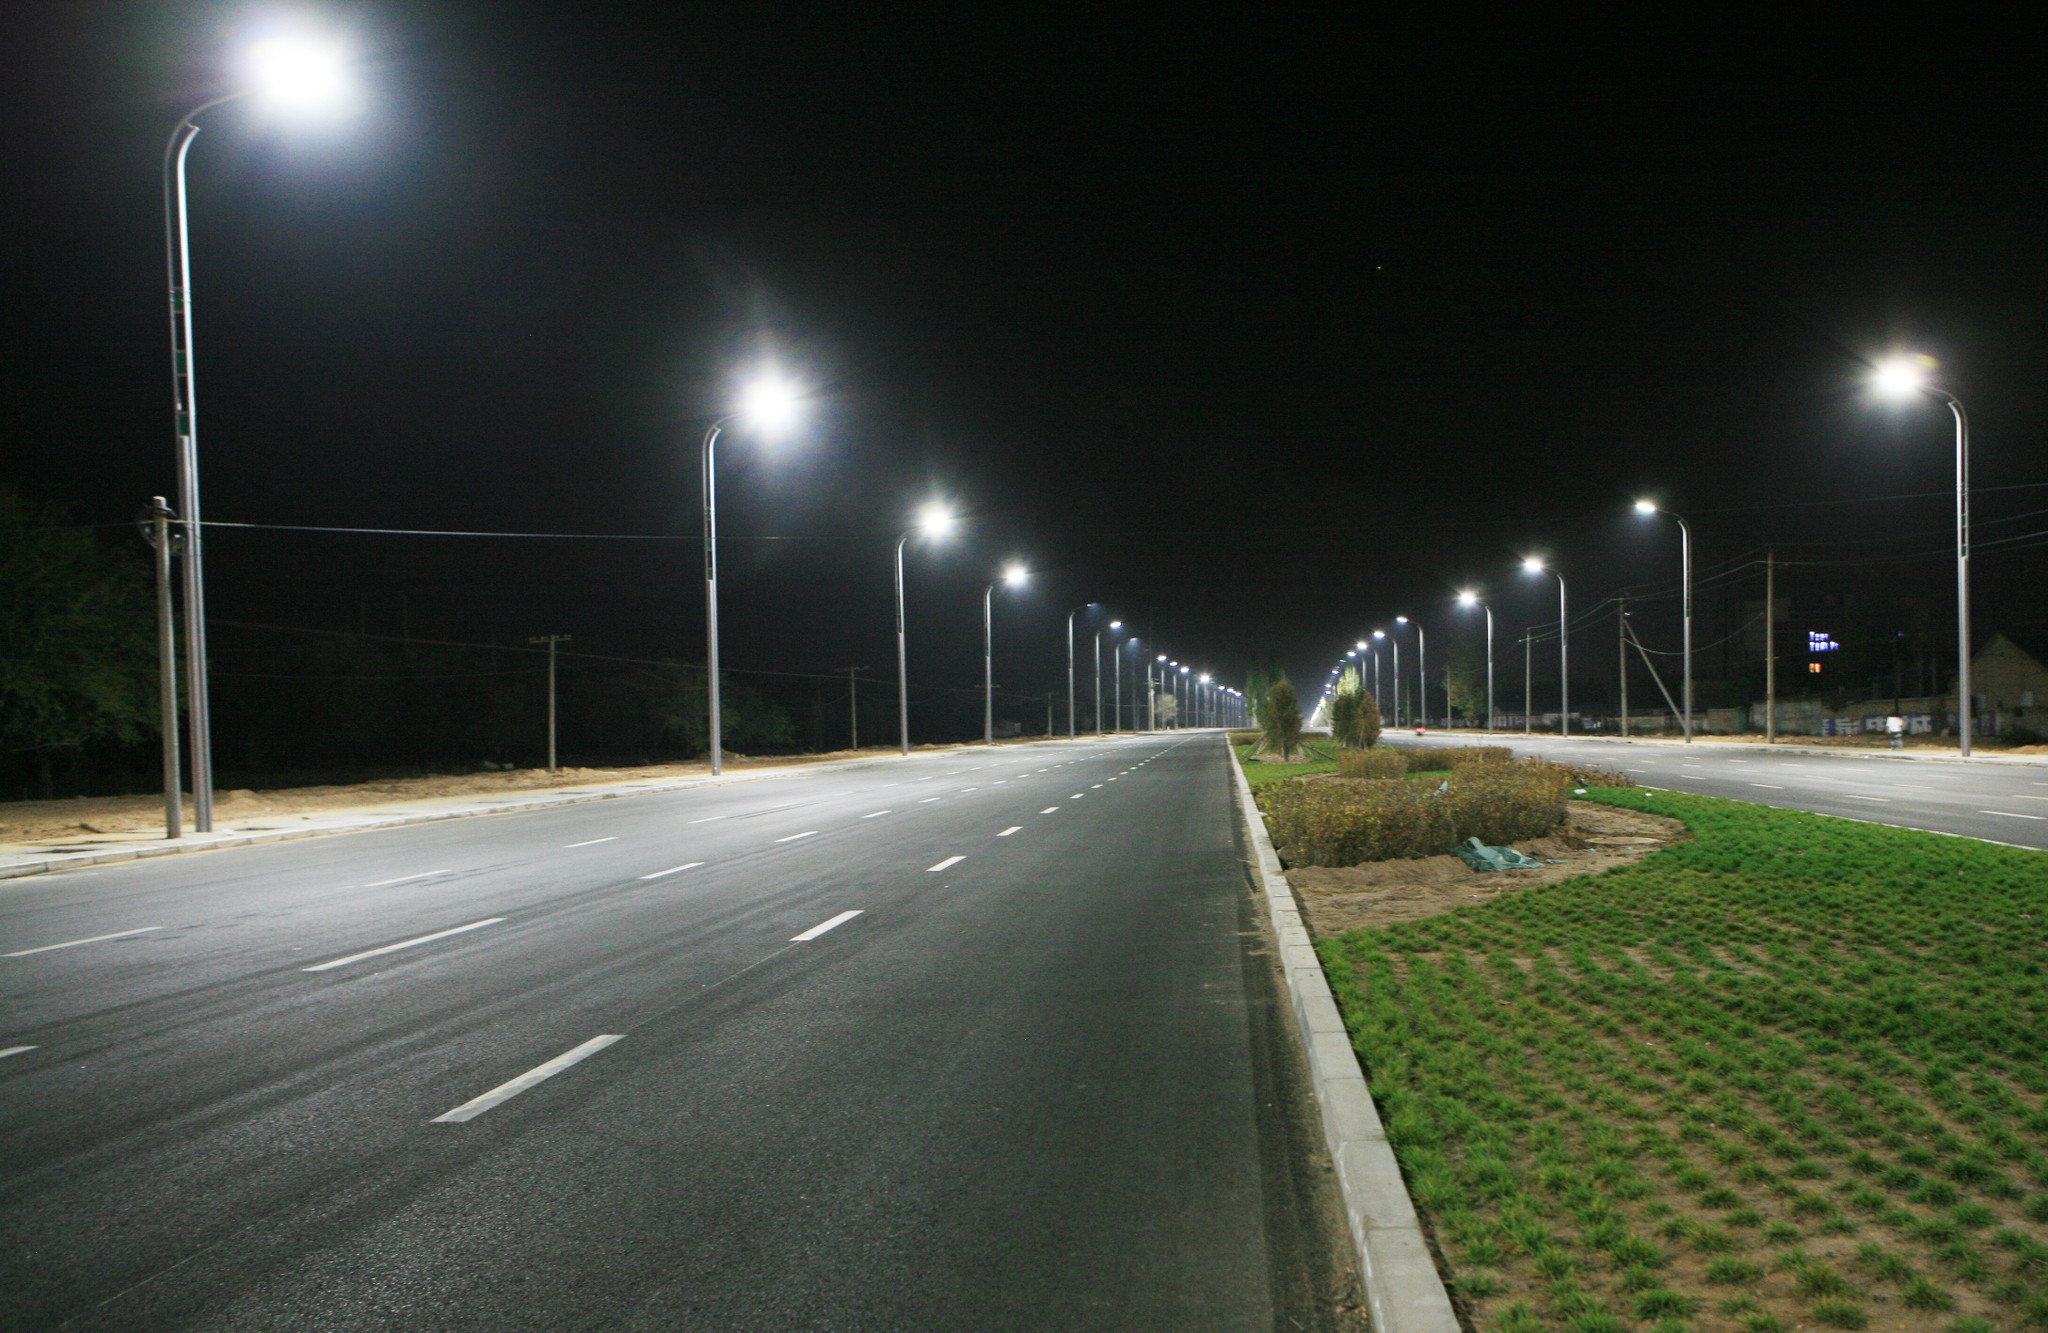 lighting-design-fixtures-light-led-lighting-light-bulbs-prepossessing-led-street-lights-adelaide-led-street-lights-hyderabadled-street-lights-hounslowled-street-lights-housingled-street-lights_f8cd028f-a8b9-4d7a-834c-67983ec9db03.jpeg